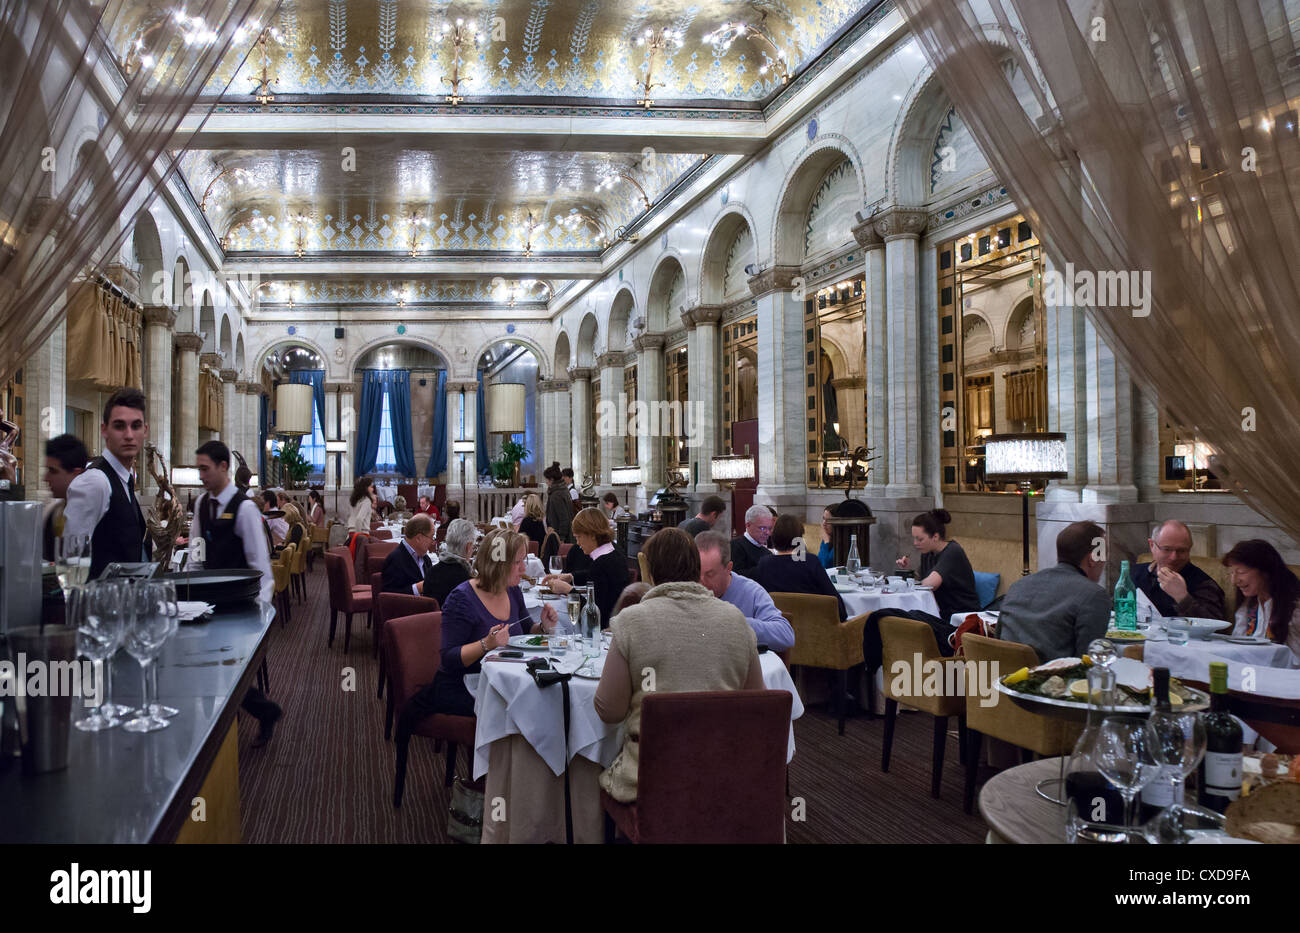 UK, London, the afternoon tea hall of the Criterion restaurant in Piccadilly Circus - Stock Image